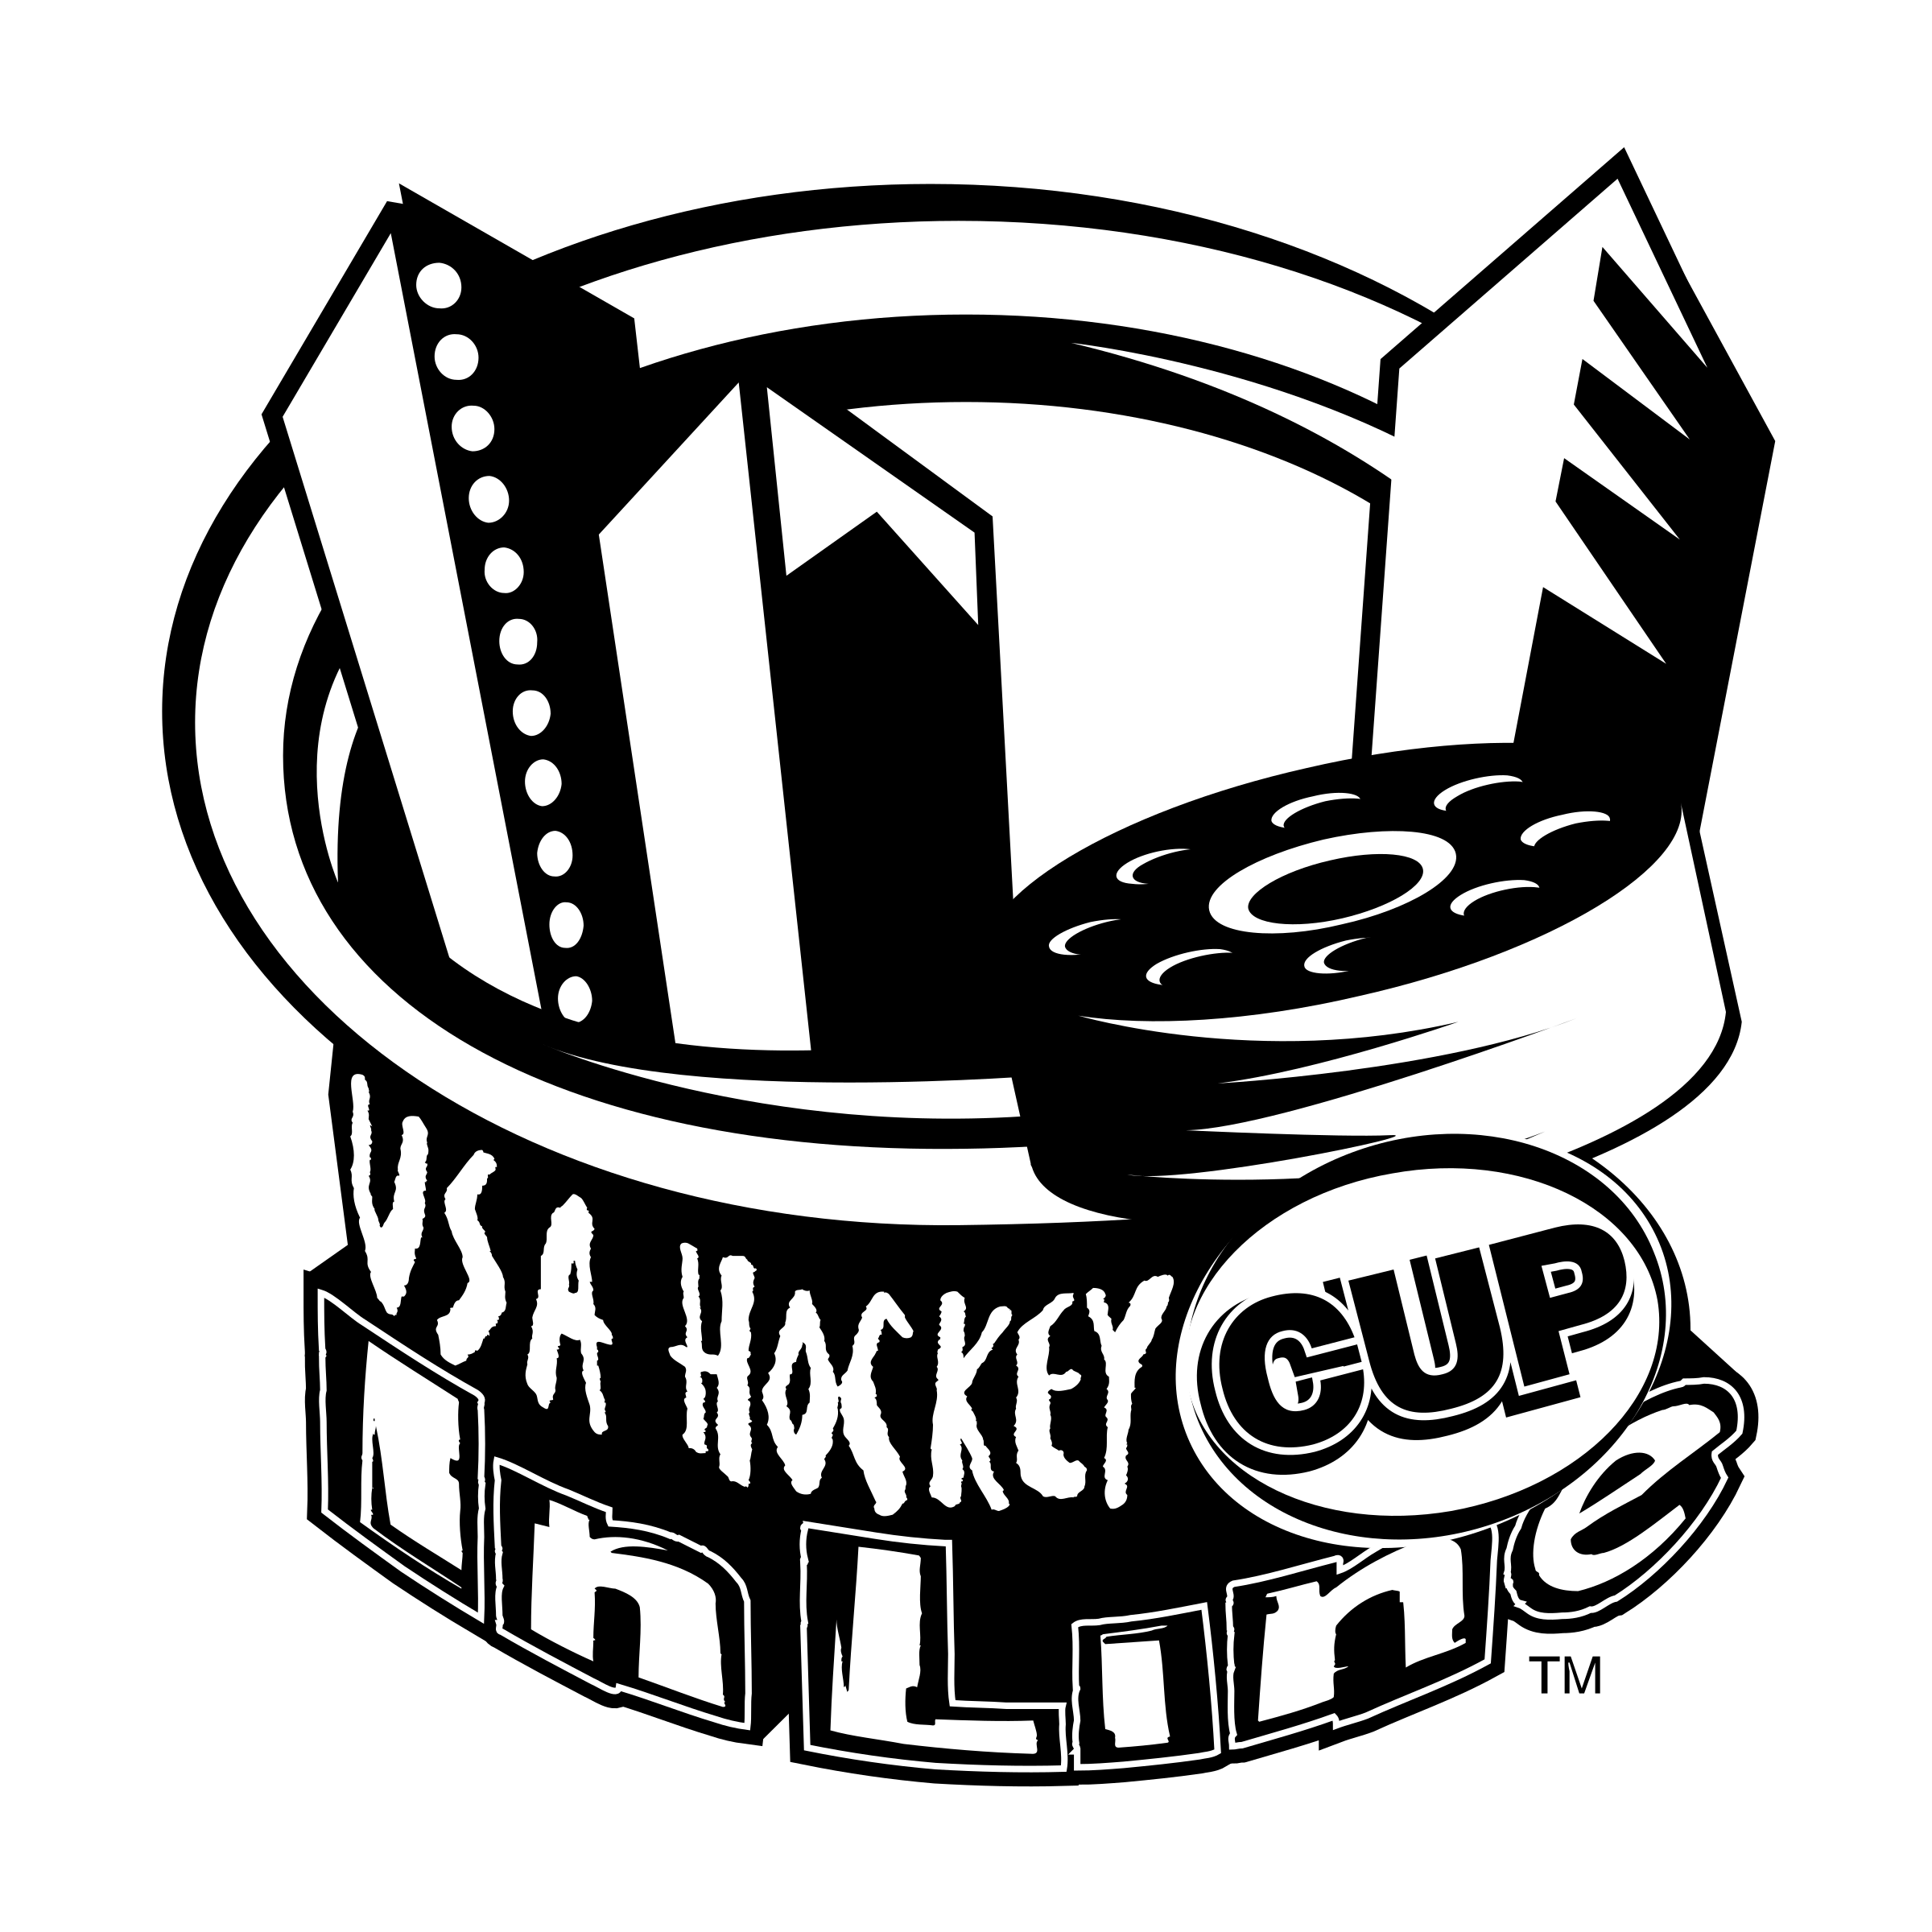 transparent stock Hockey inline cup png. Usa drawing logo